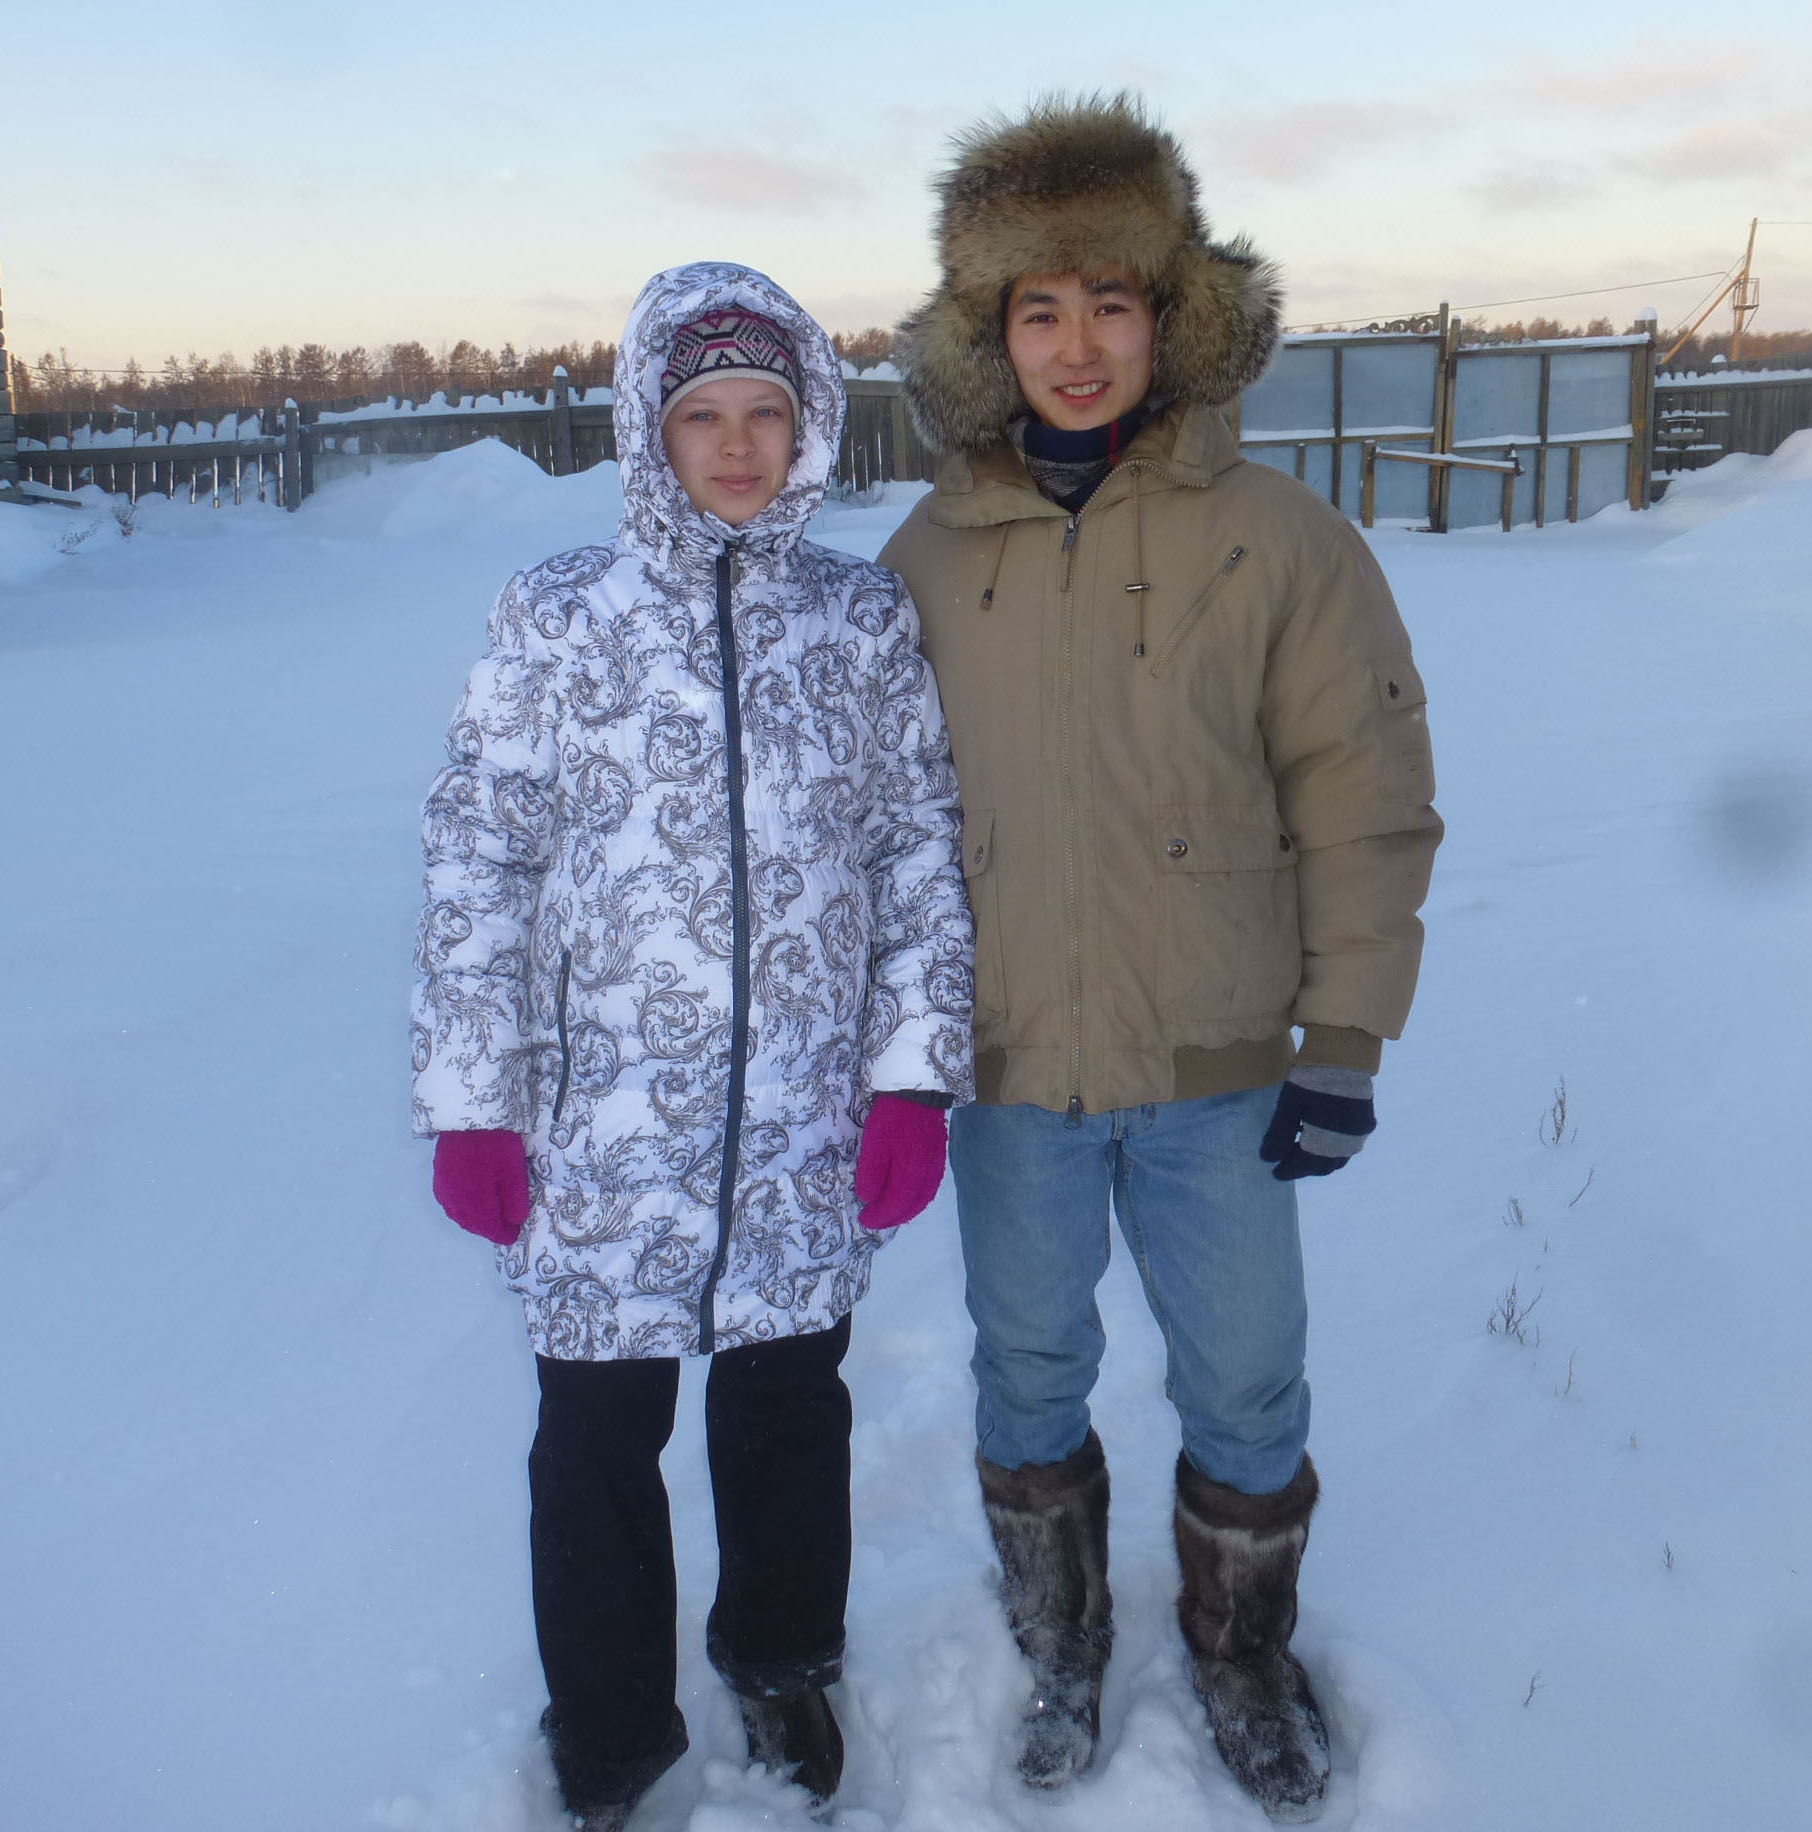 Vladamir and Tatianna Burnashev - The Burneshevs serve in Yakutsk, Russia with Wycliffe Bible Translators. They are currently working on translating the bible into the language of the local tribal group.Facebook Page